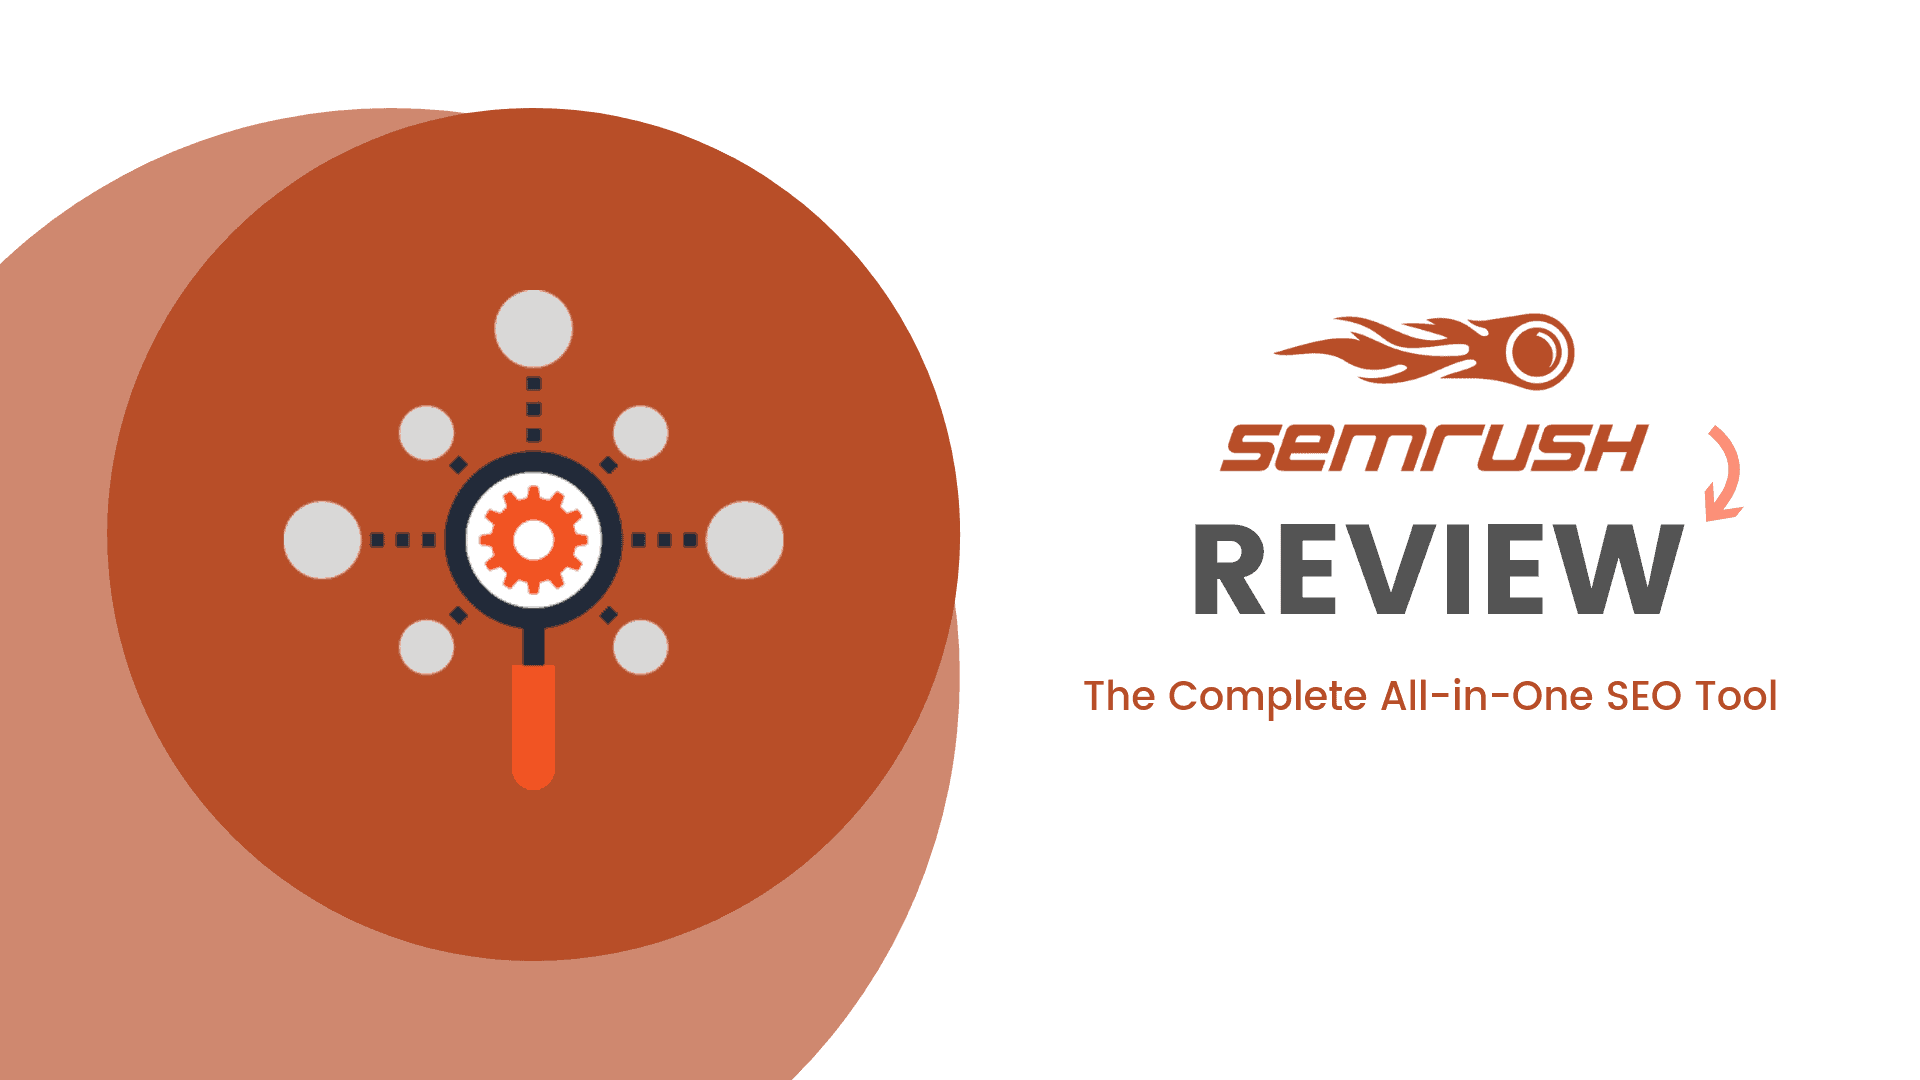 Seo Software Semrush Available In Store